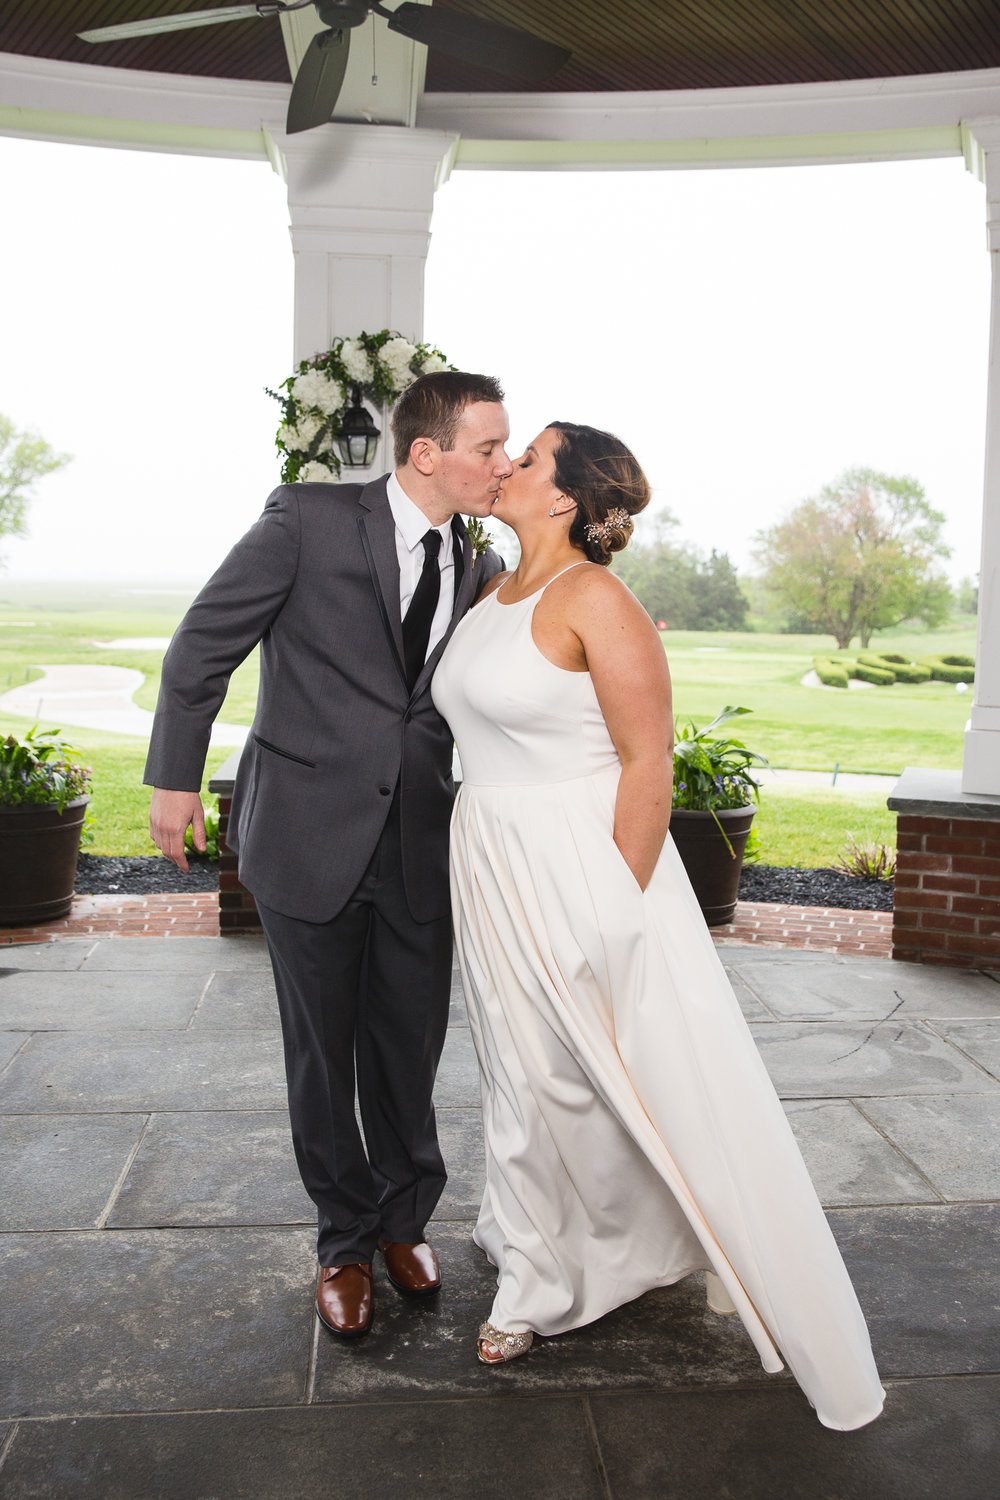 ChristineandRyanWeddingWEB-610.jpg